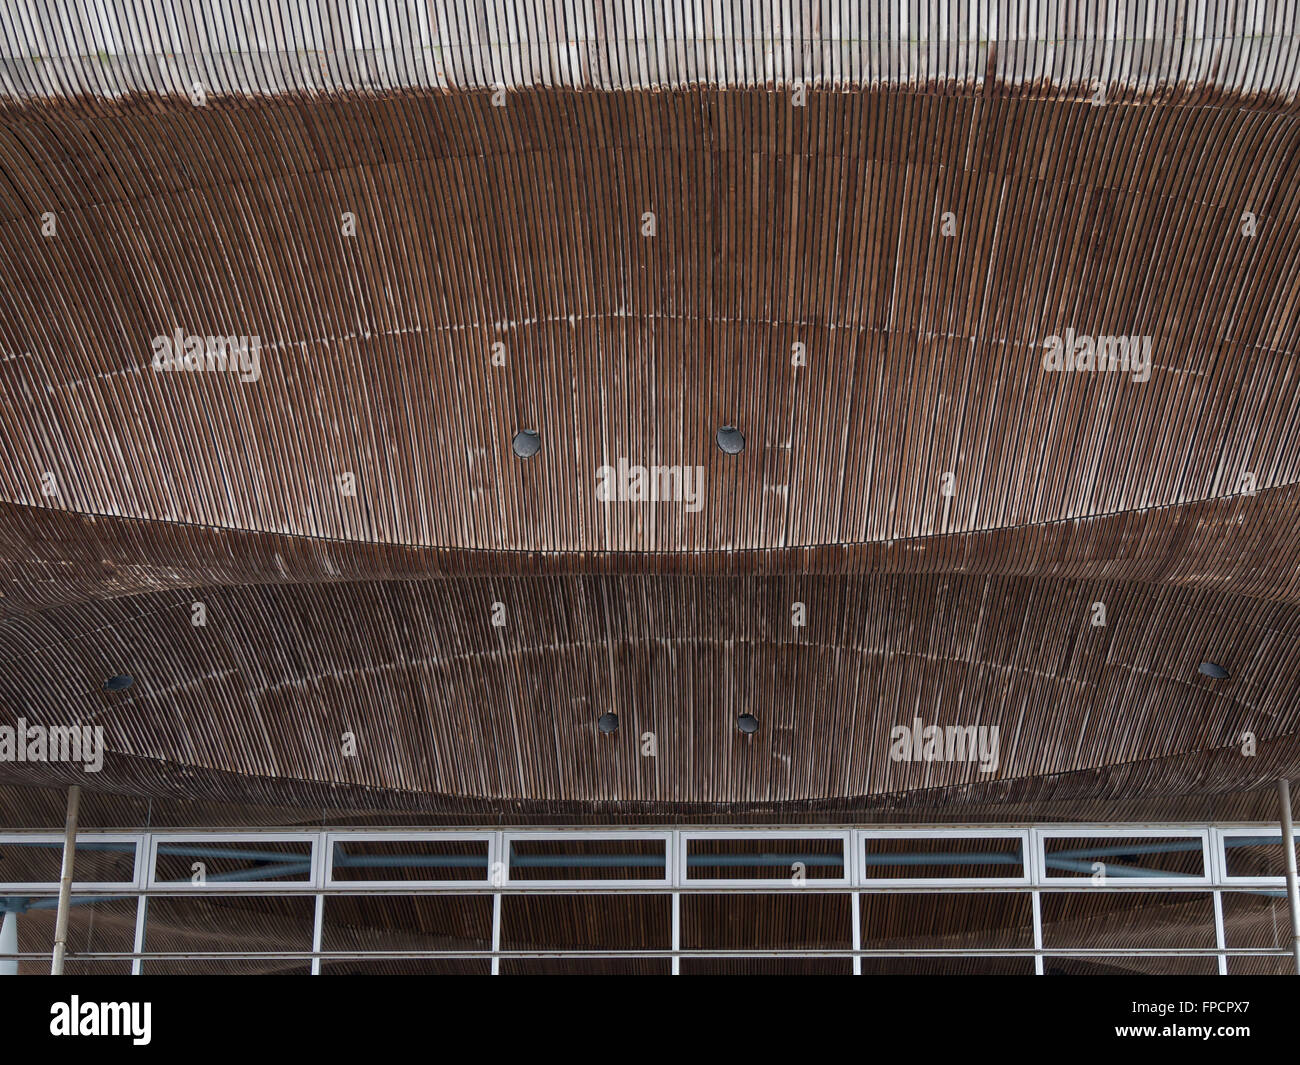 Roof detail, National Assembly for Wales, Cardiff Bay, Cardiff, South Glamorgan, Wales, UK, Europe - Stock Image